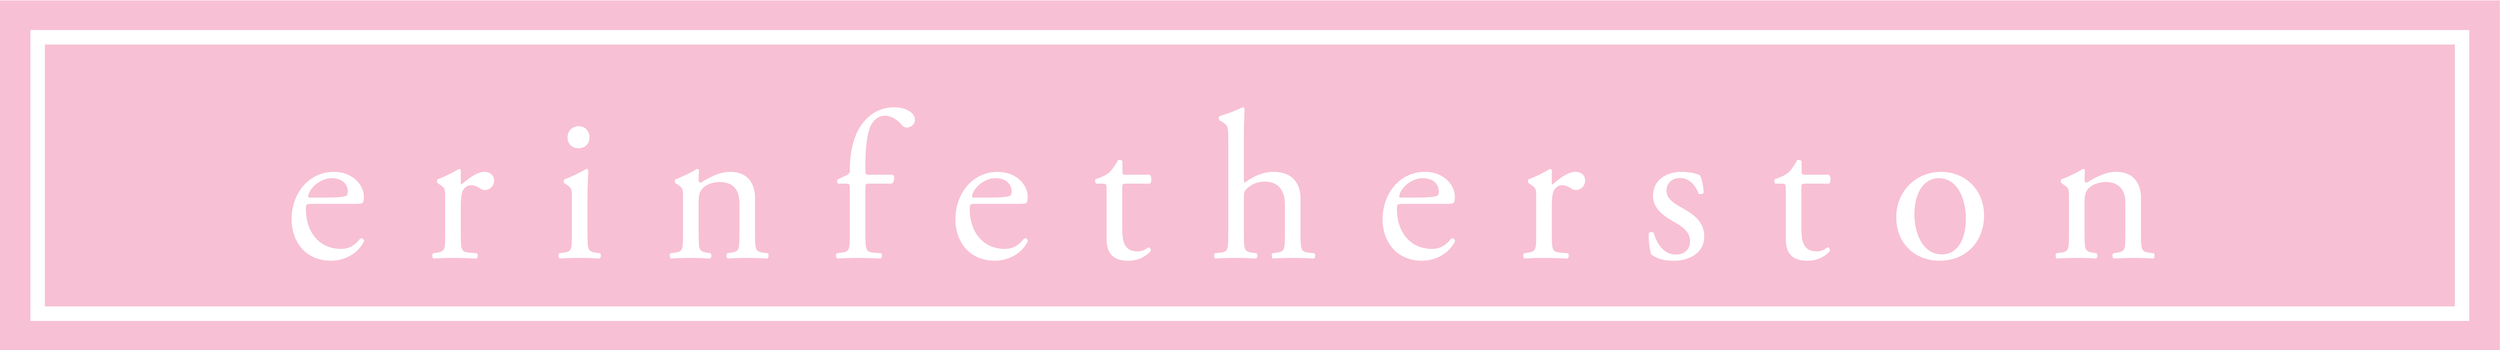 erinfetherston_banner.png